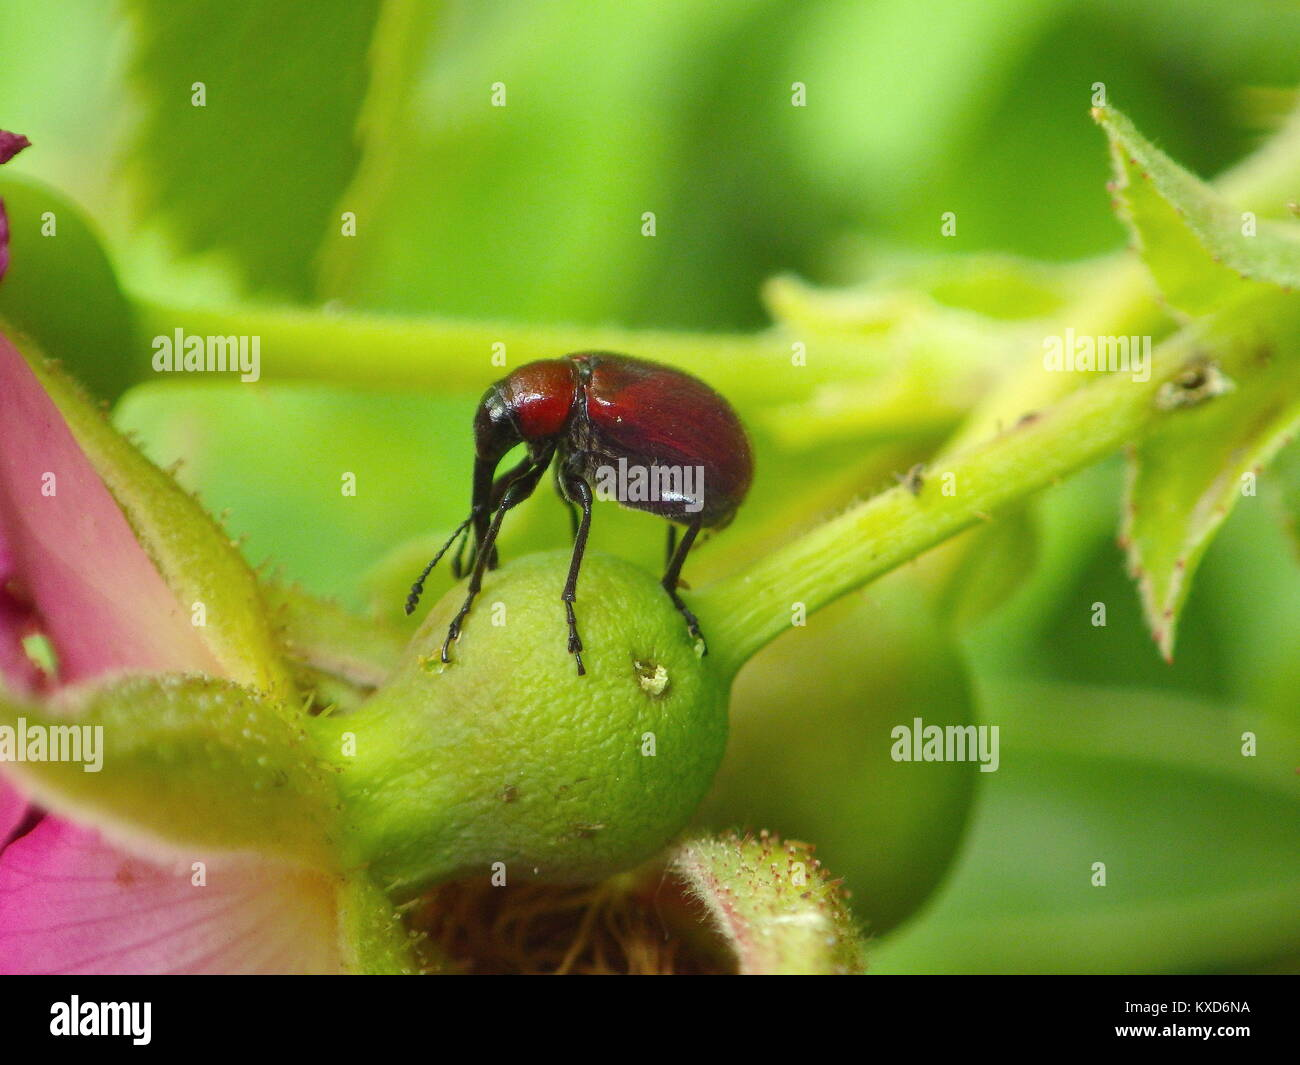 Red Weevil Stock Photos & Red Weevil Stock Images - Alamy